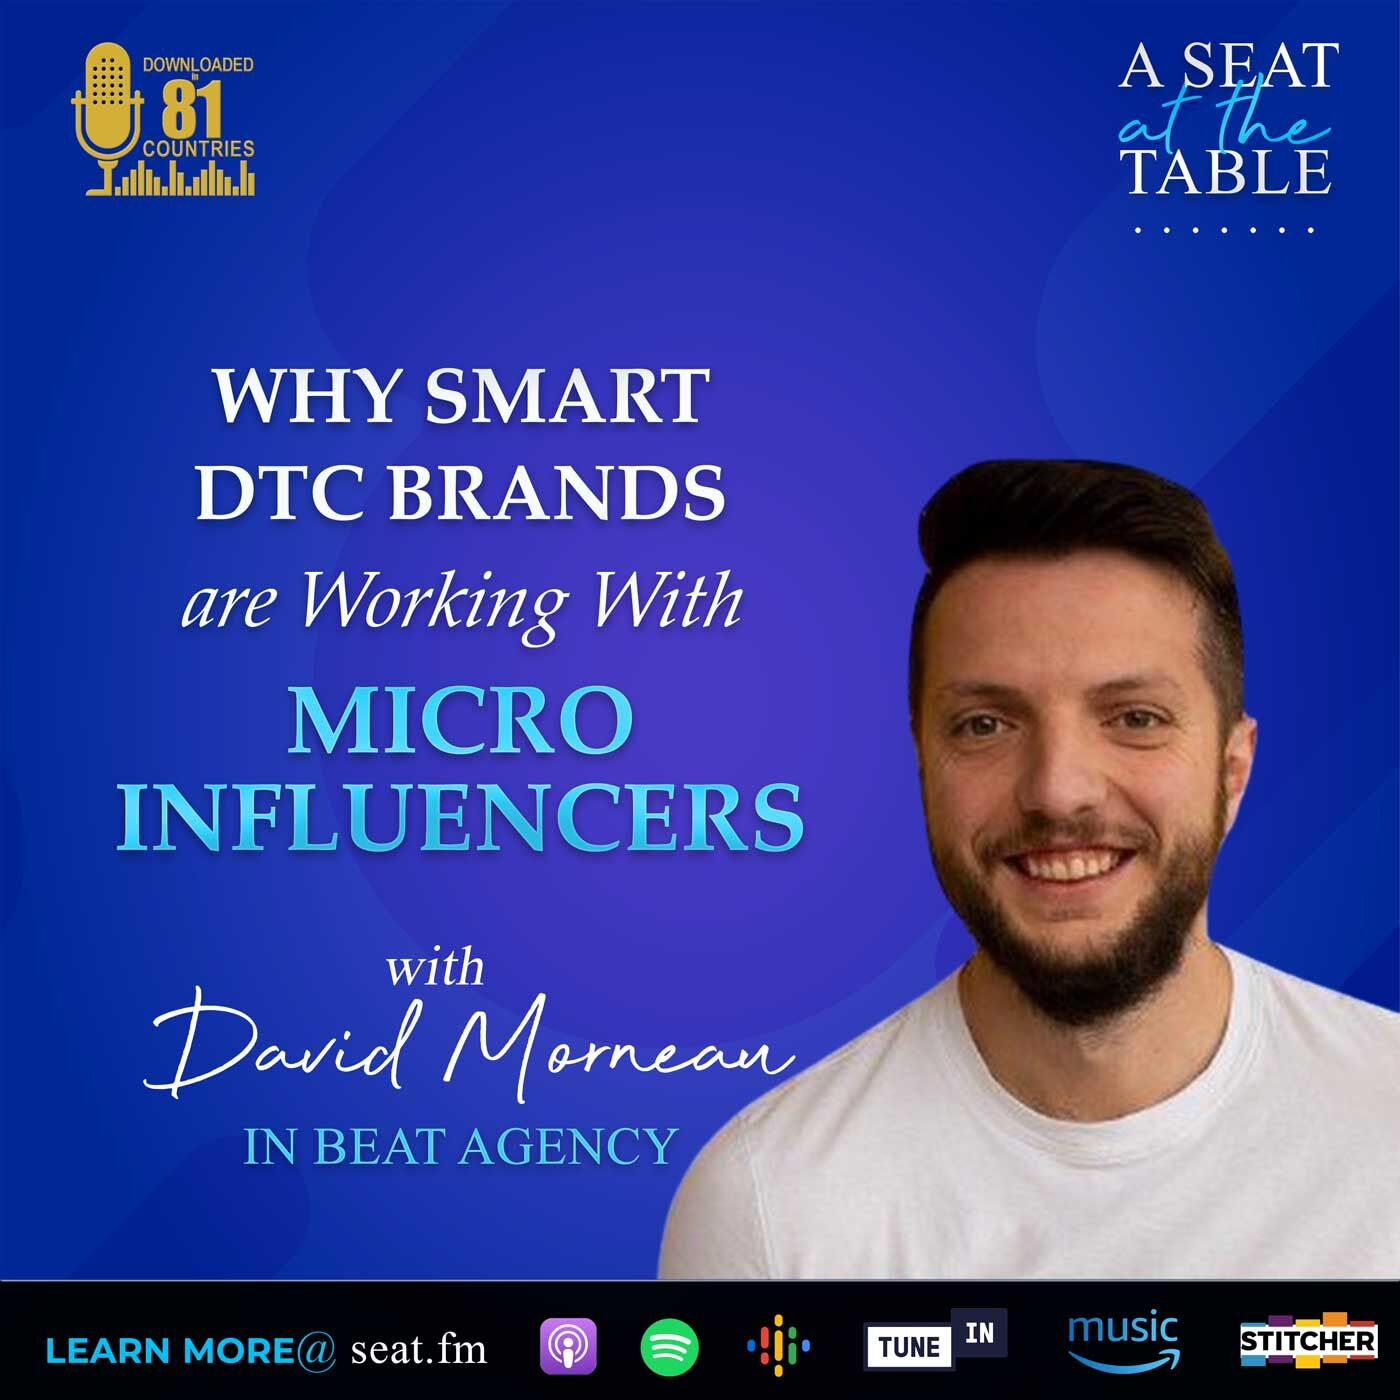 Why Smart DTC Brands are Working with Micro Influencers